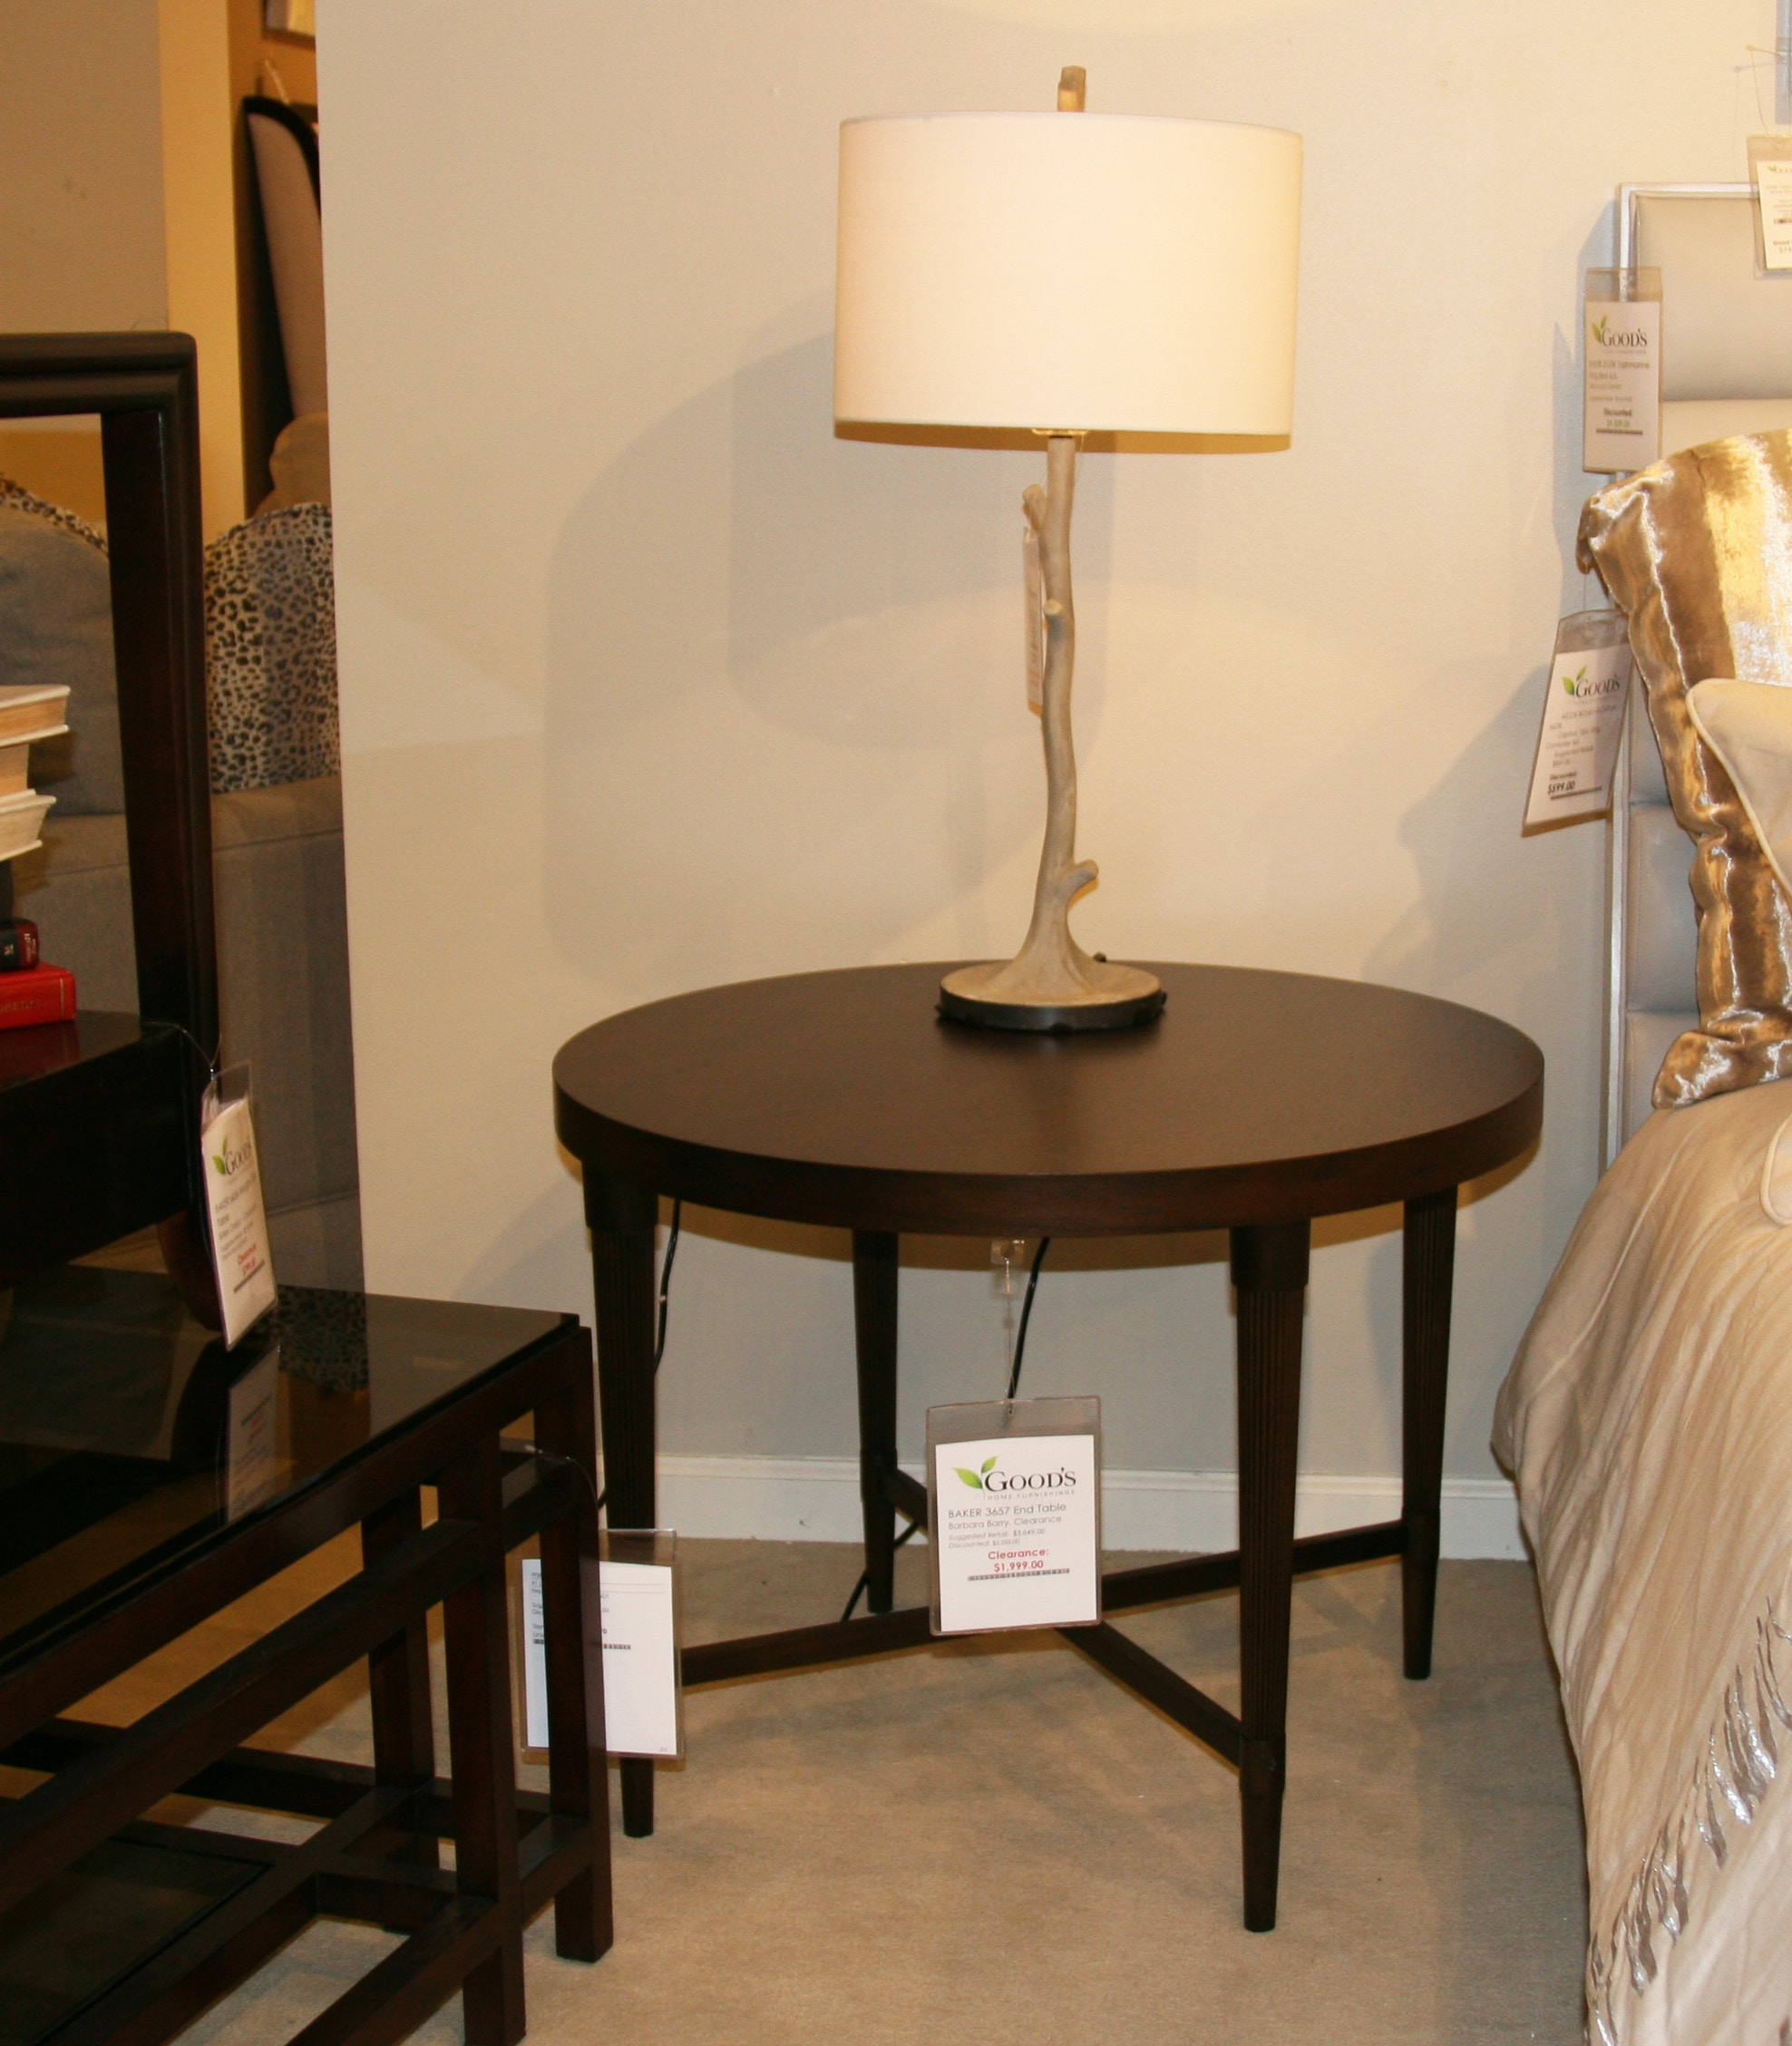 Baker Furniture Barbara Barry End Table 3657 Clearance